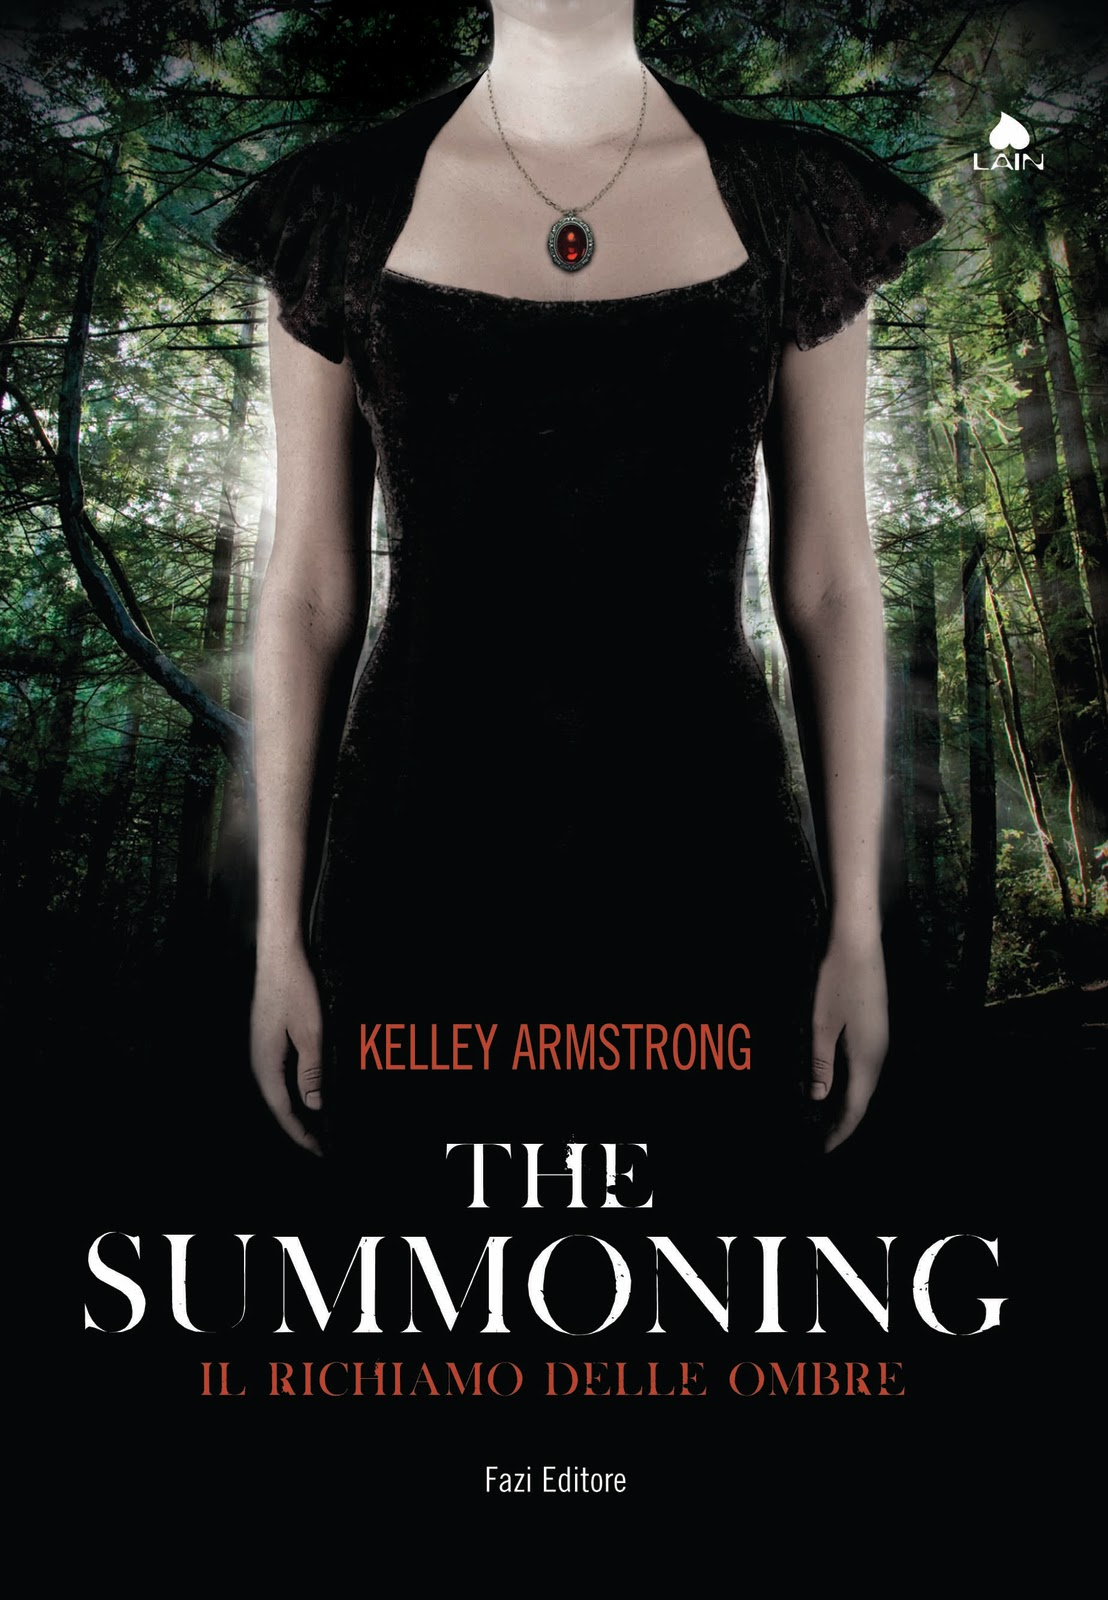 More about The summoning